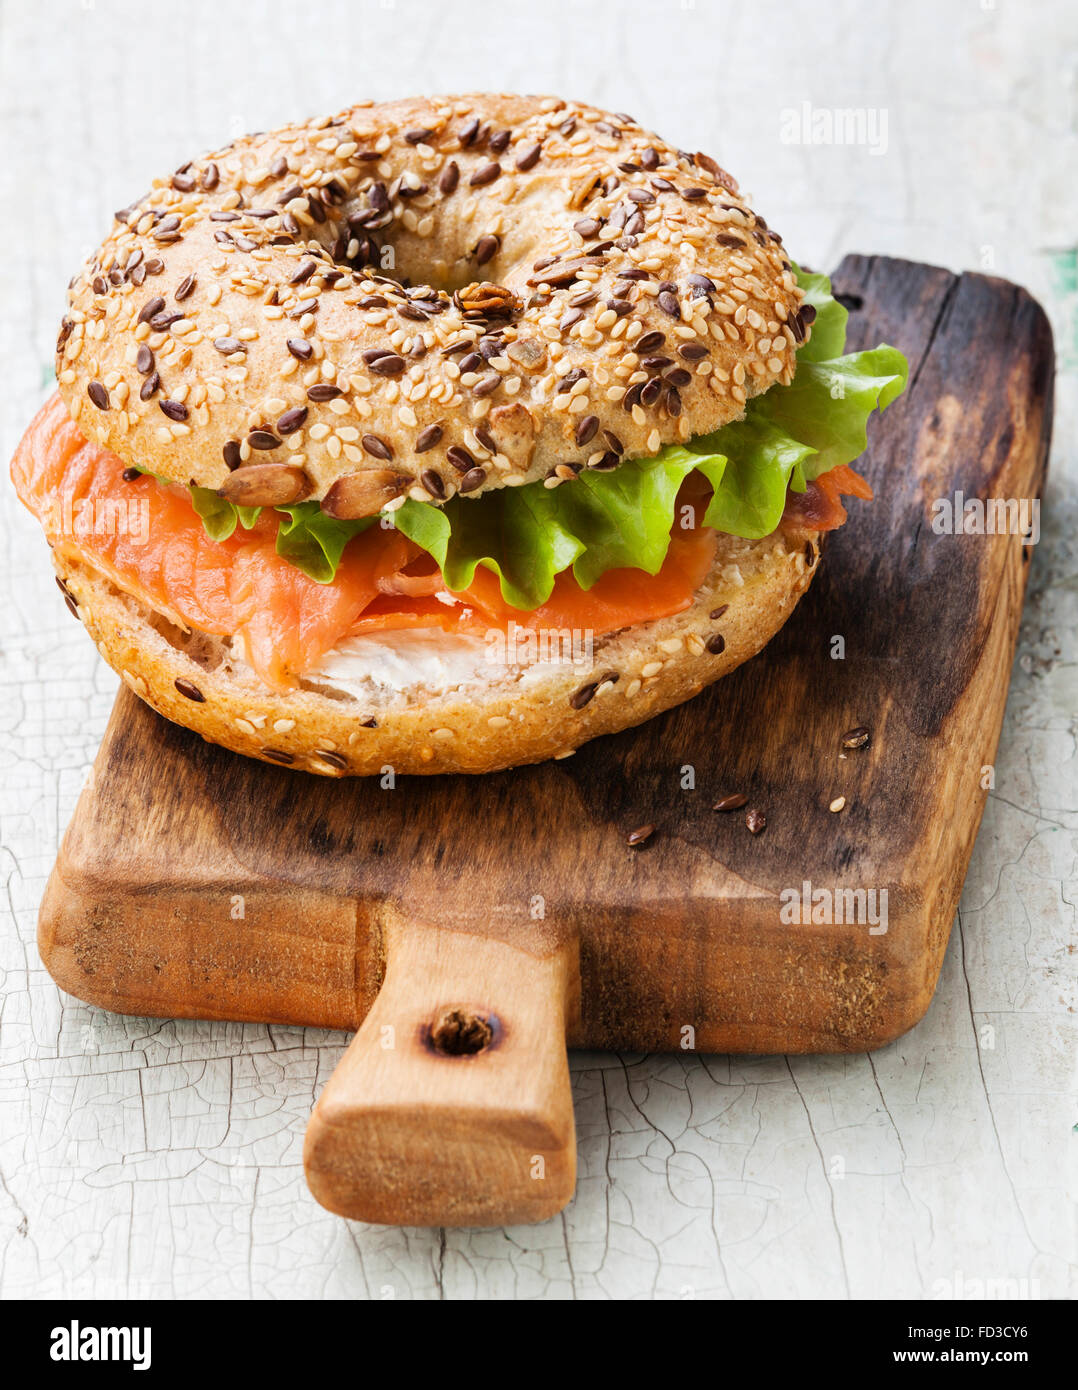 Salmon Bagel Sandwich with cream cheese and grain on blue wooden background - Stock Image